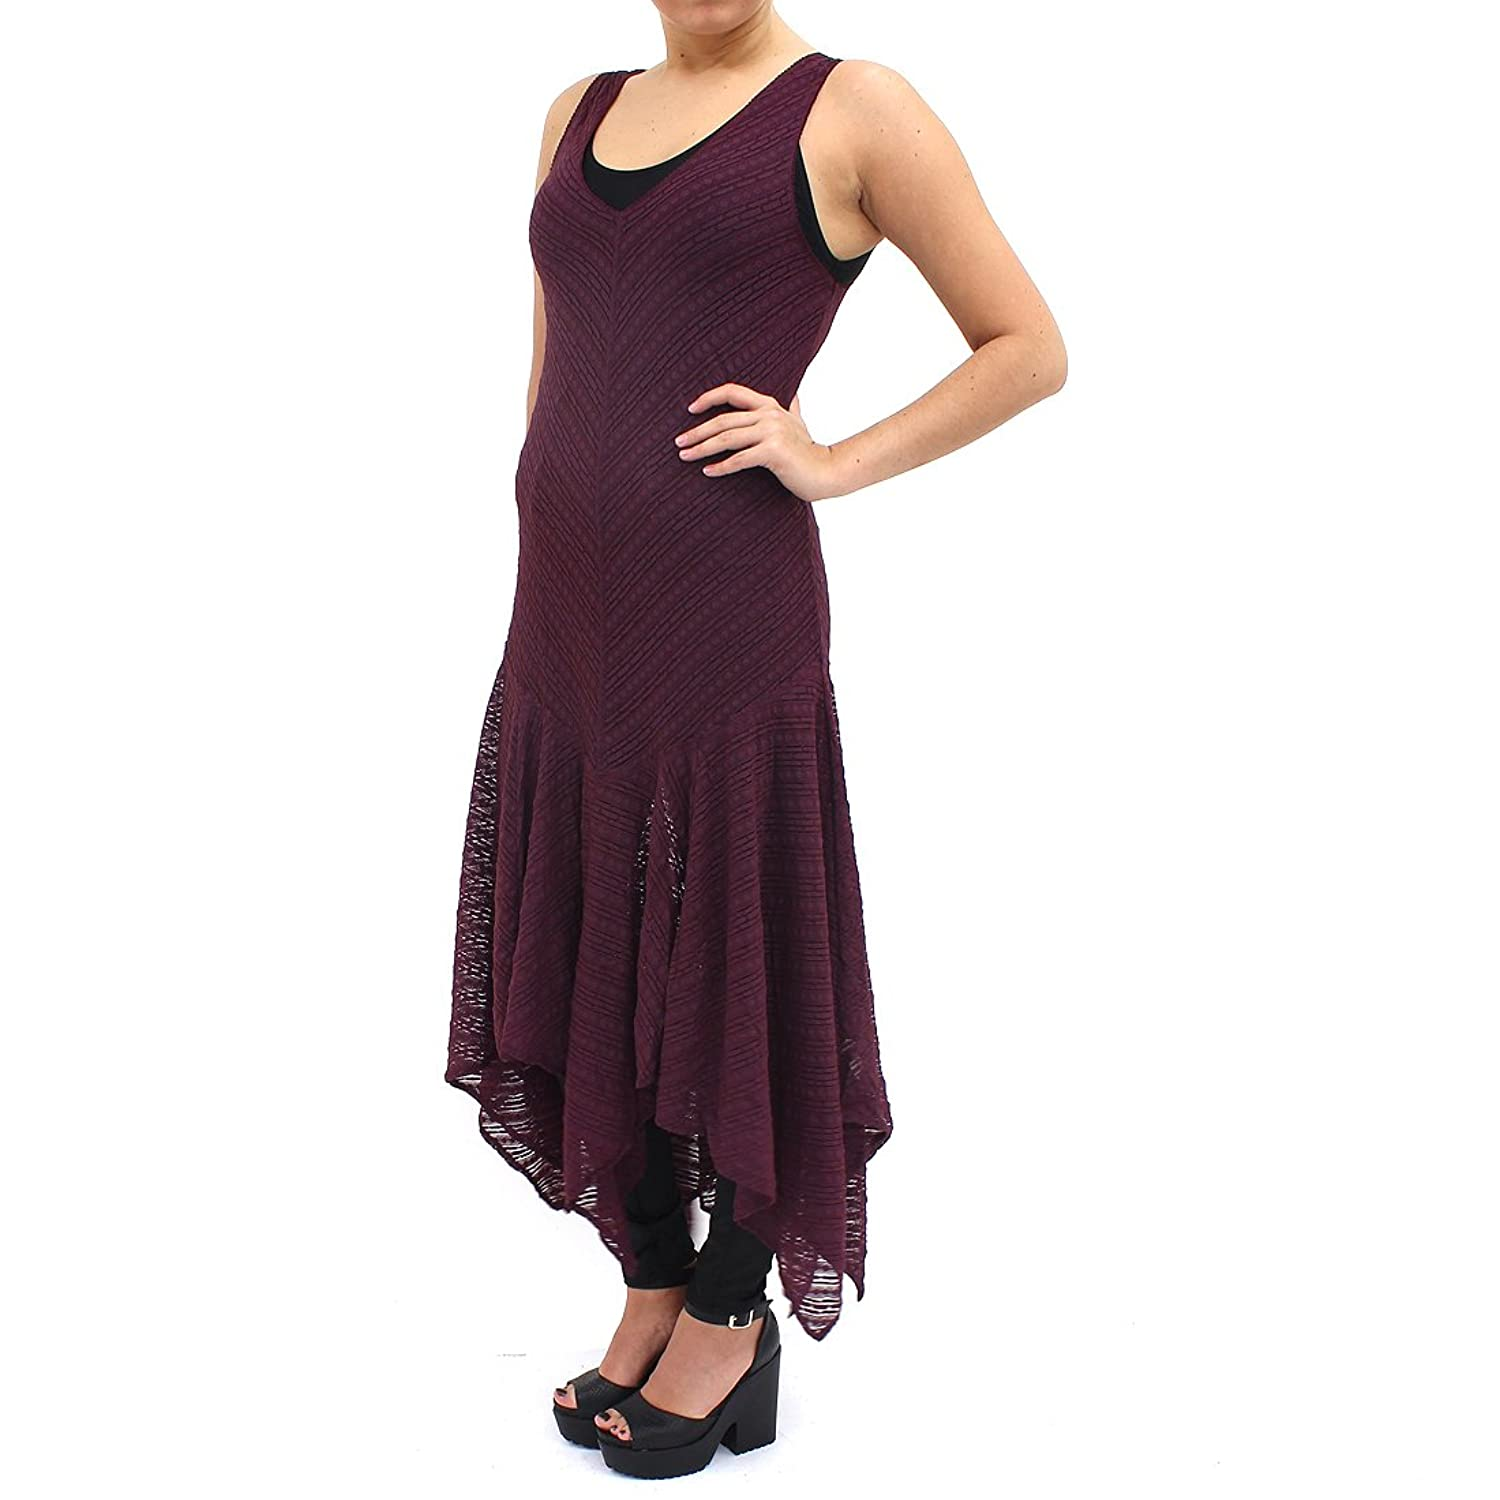 Free People Burgundy Love Lace Dress 085924089